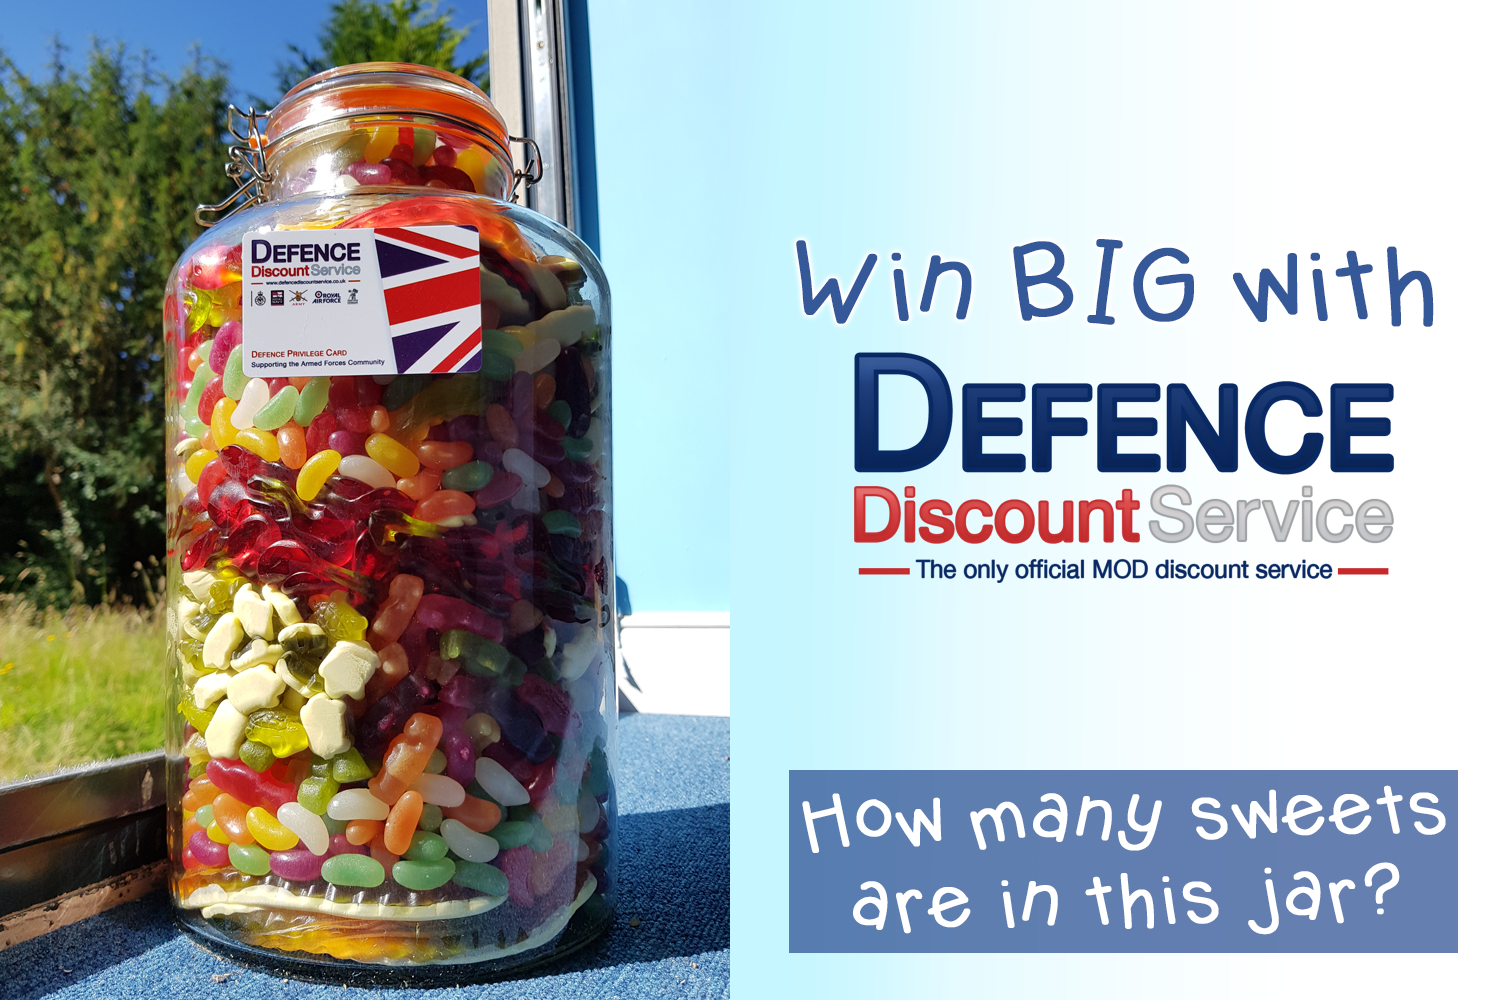 To celebrate Armed Forces Day we've got another 'Win BIG with DDS' prize to be won!